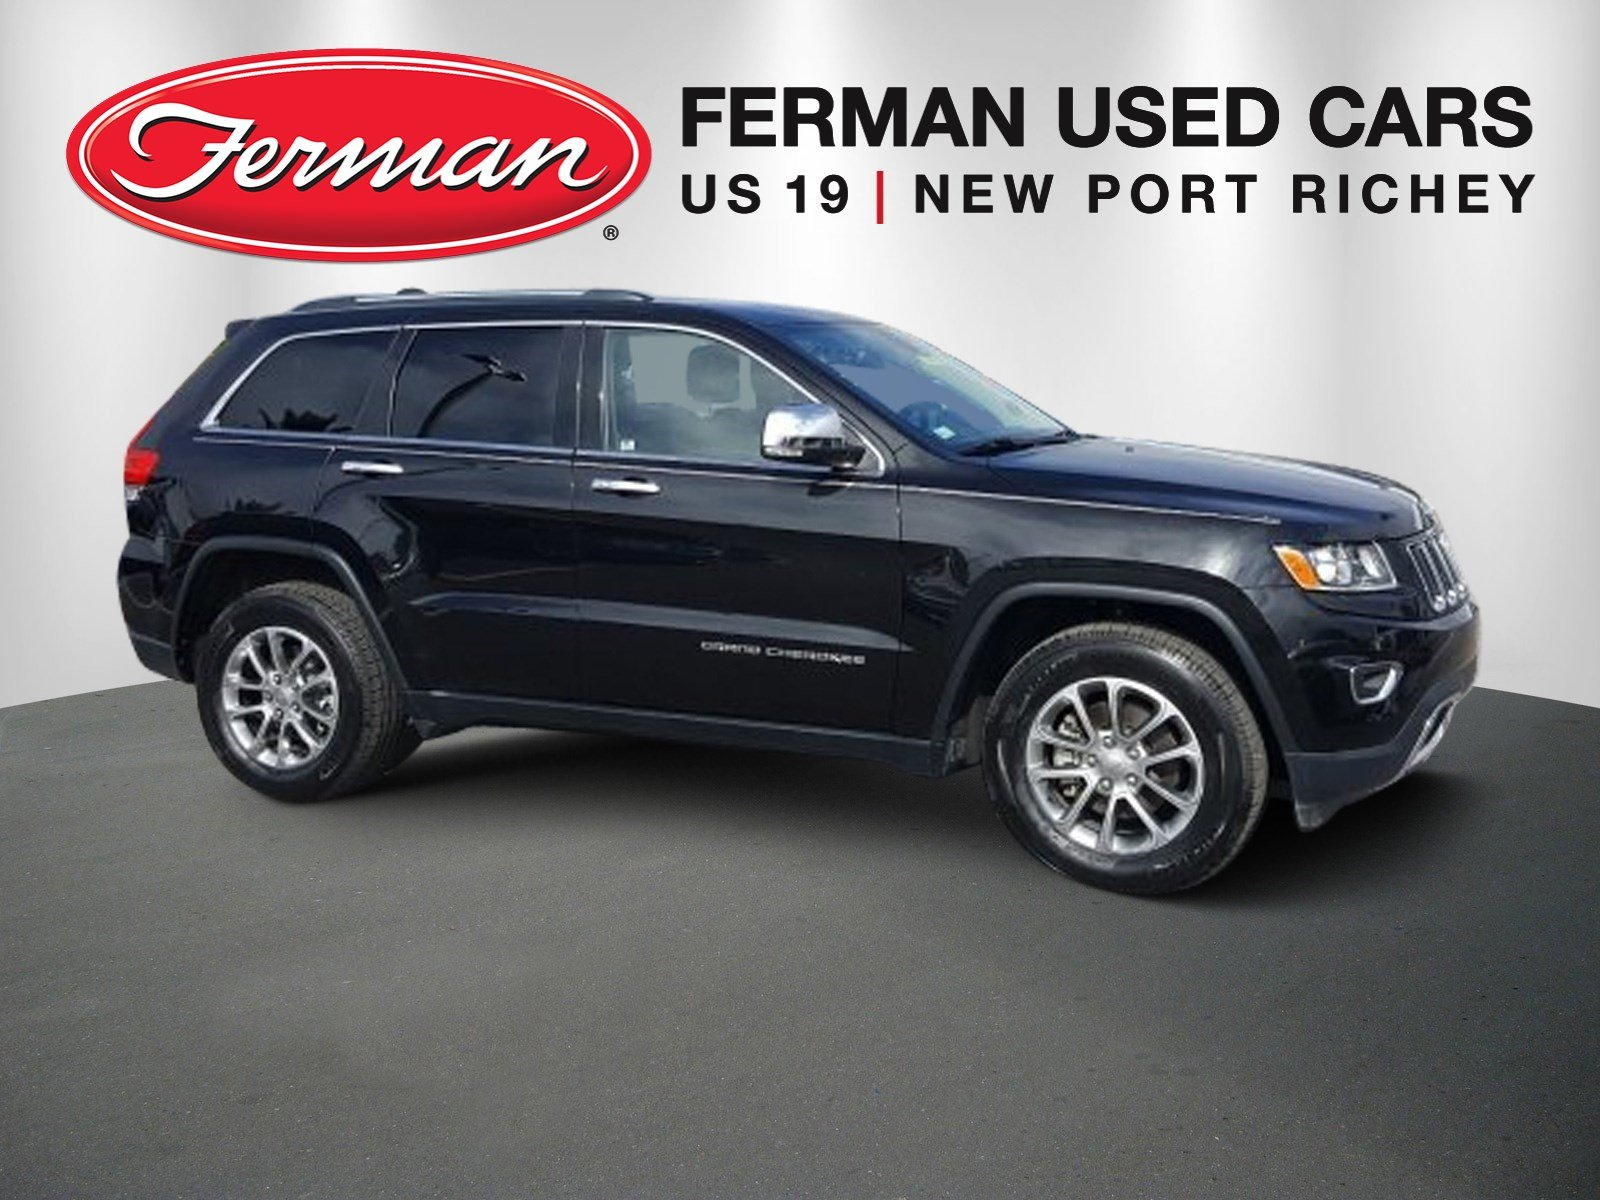 Photo 2015 Jeep Grand Cherokee Limited 4x2 SUV in New Port Richey, FL